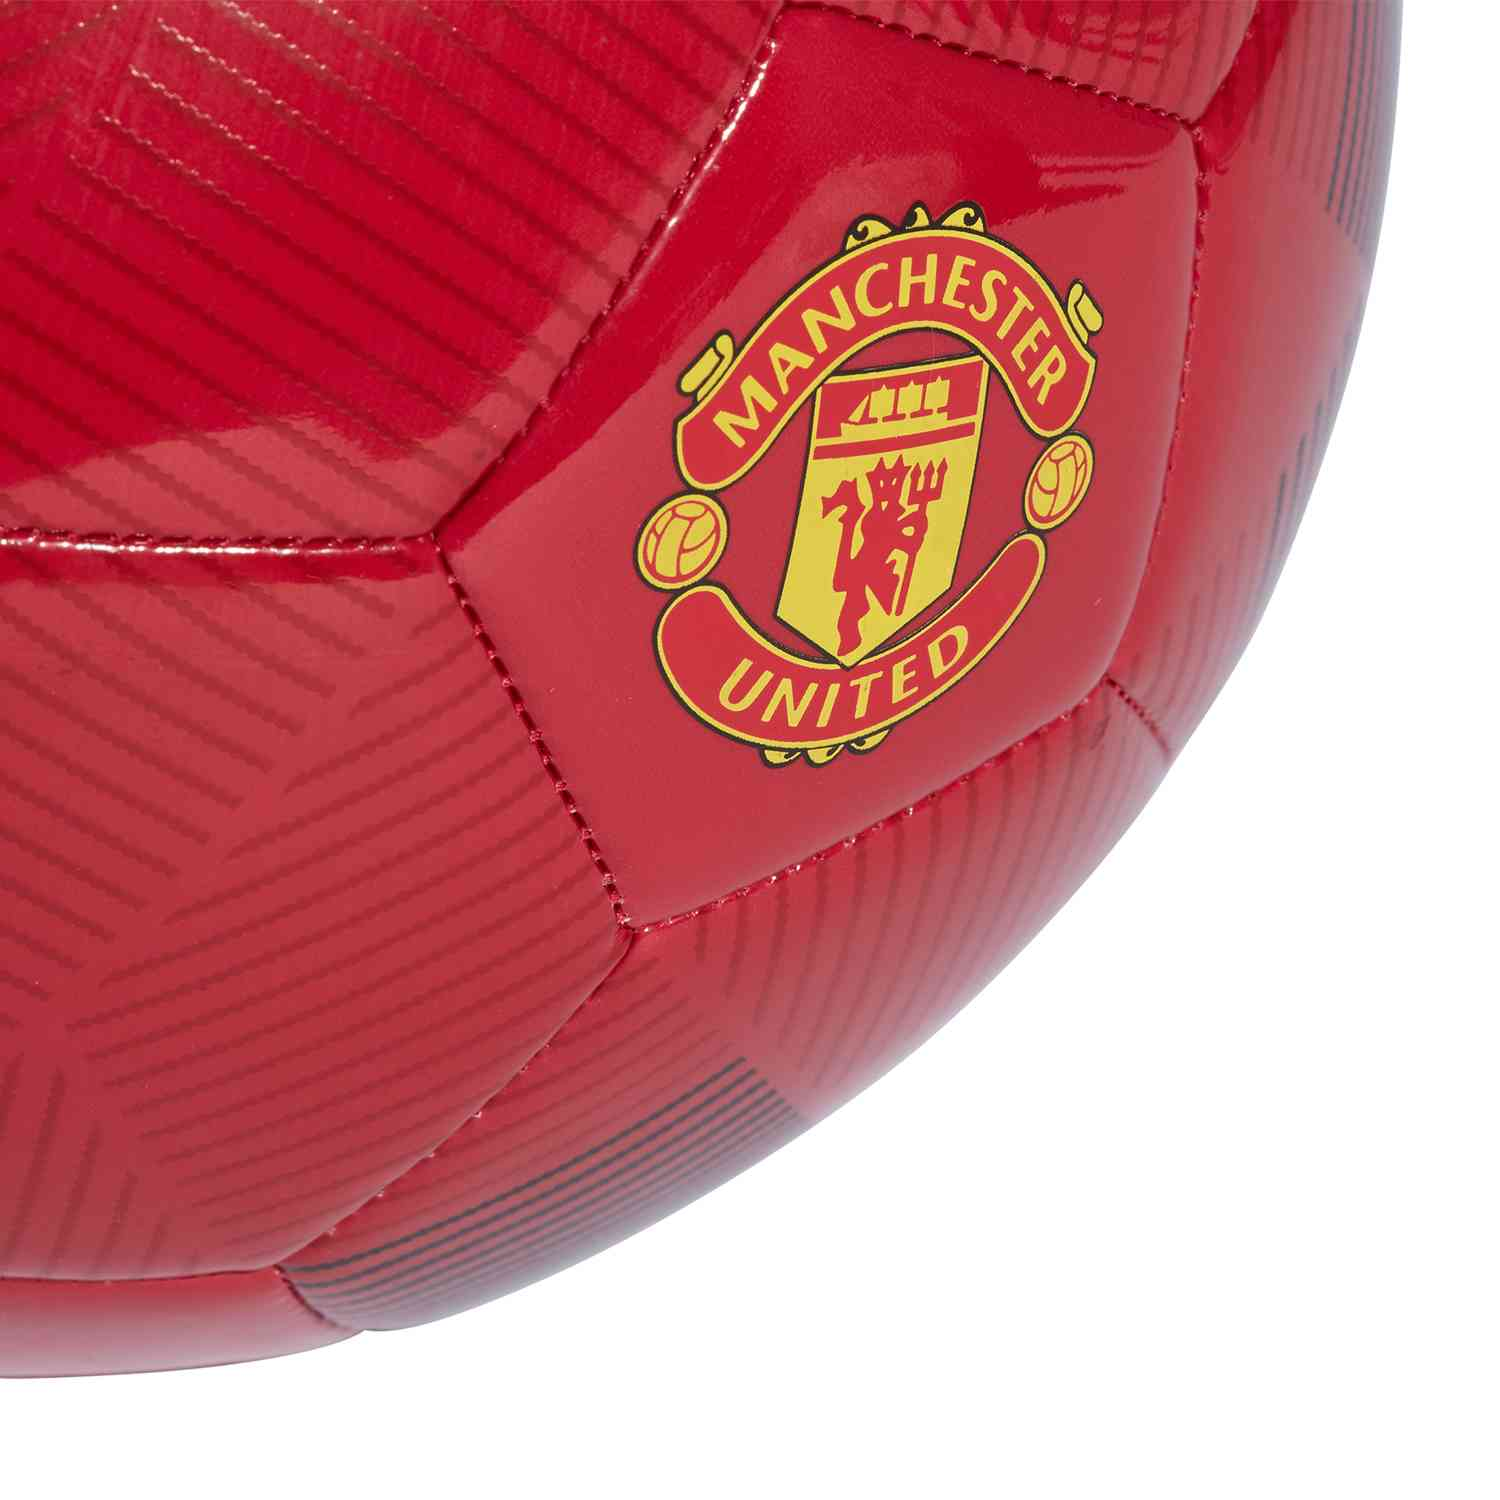 Adidas Manchester United Soccer Ball Real Red Black Soccerpro